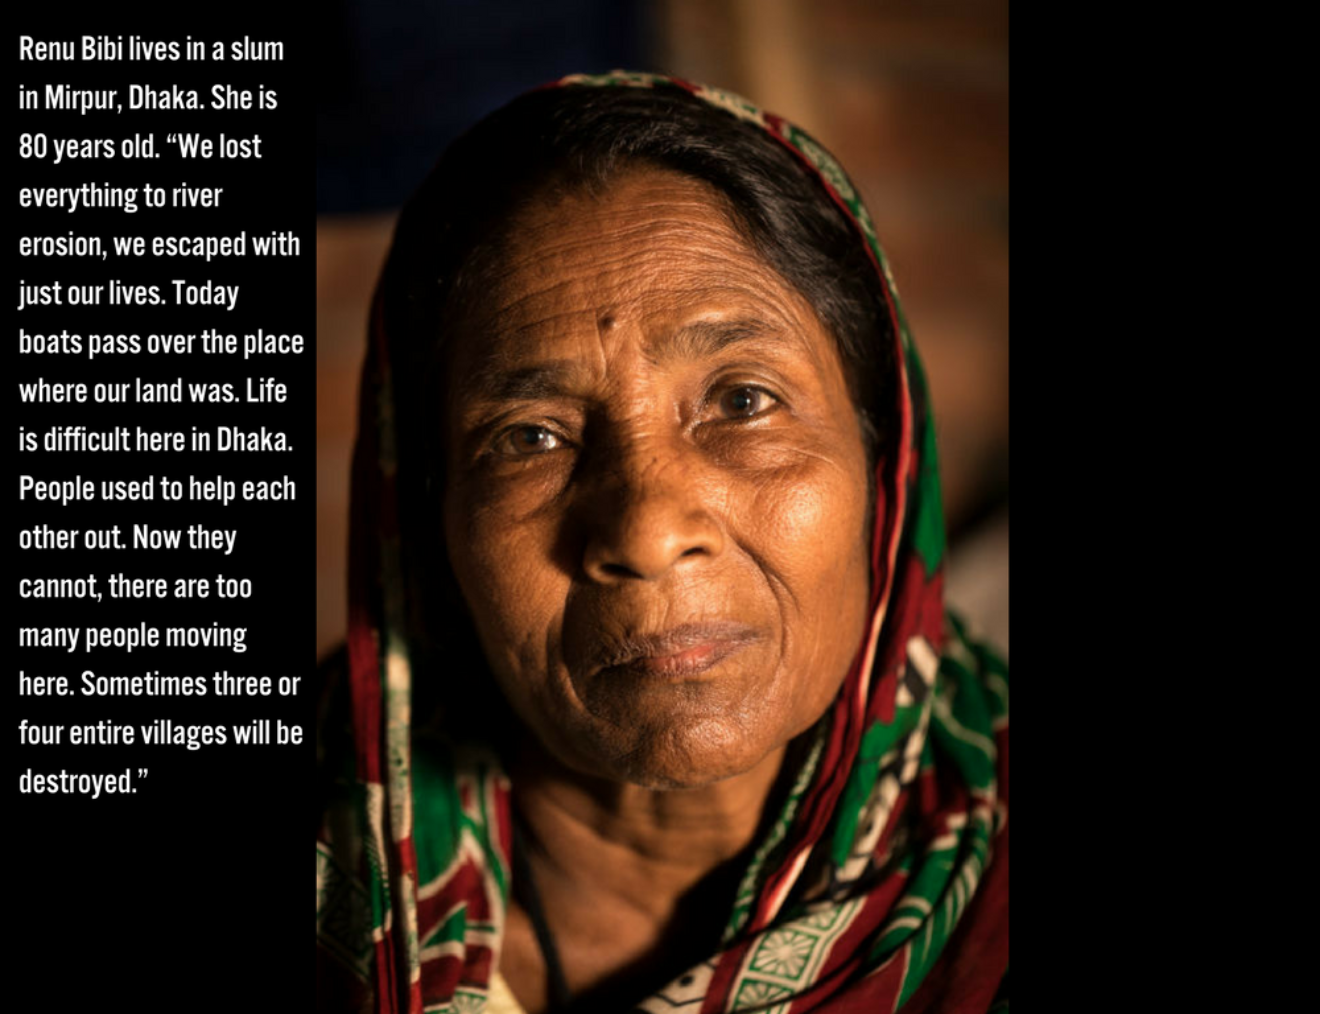 "Renu Bibi Lives In A Slum In Mirpur Dhaka  She Is 80 Years Old "" We Lost Everything To River Erosion We Escaped With Just Our Lives  Today Boats Pass Over The Place Where Our Land Was  Life Is Difficult Here In Dha"